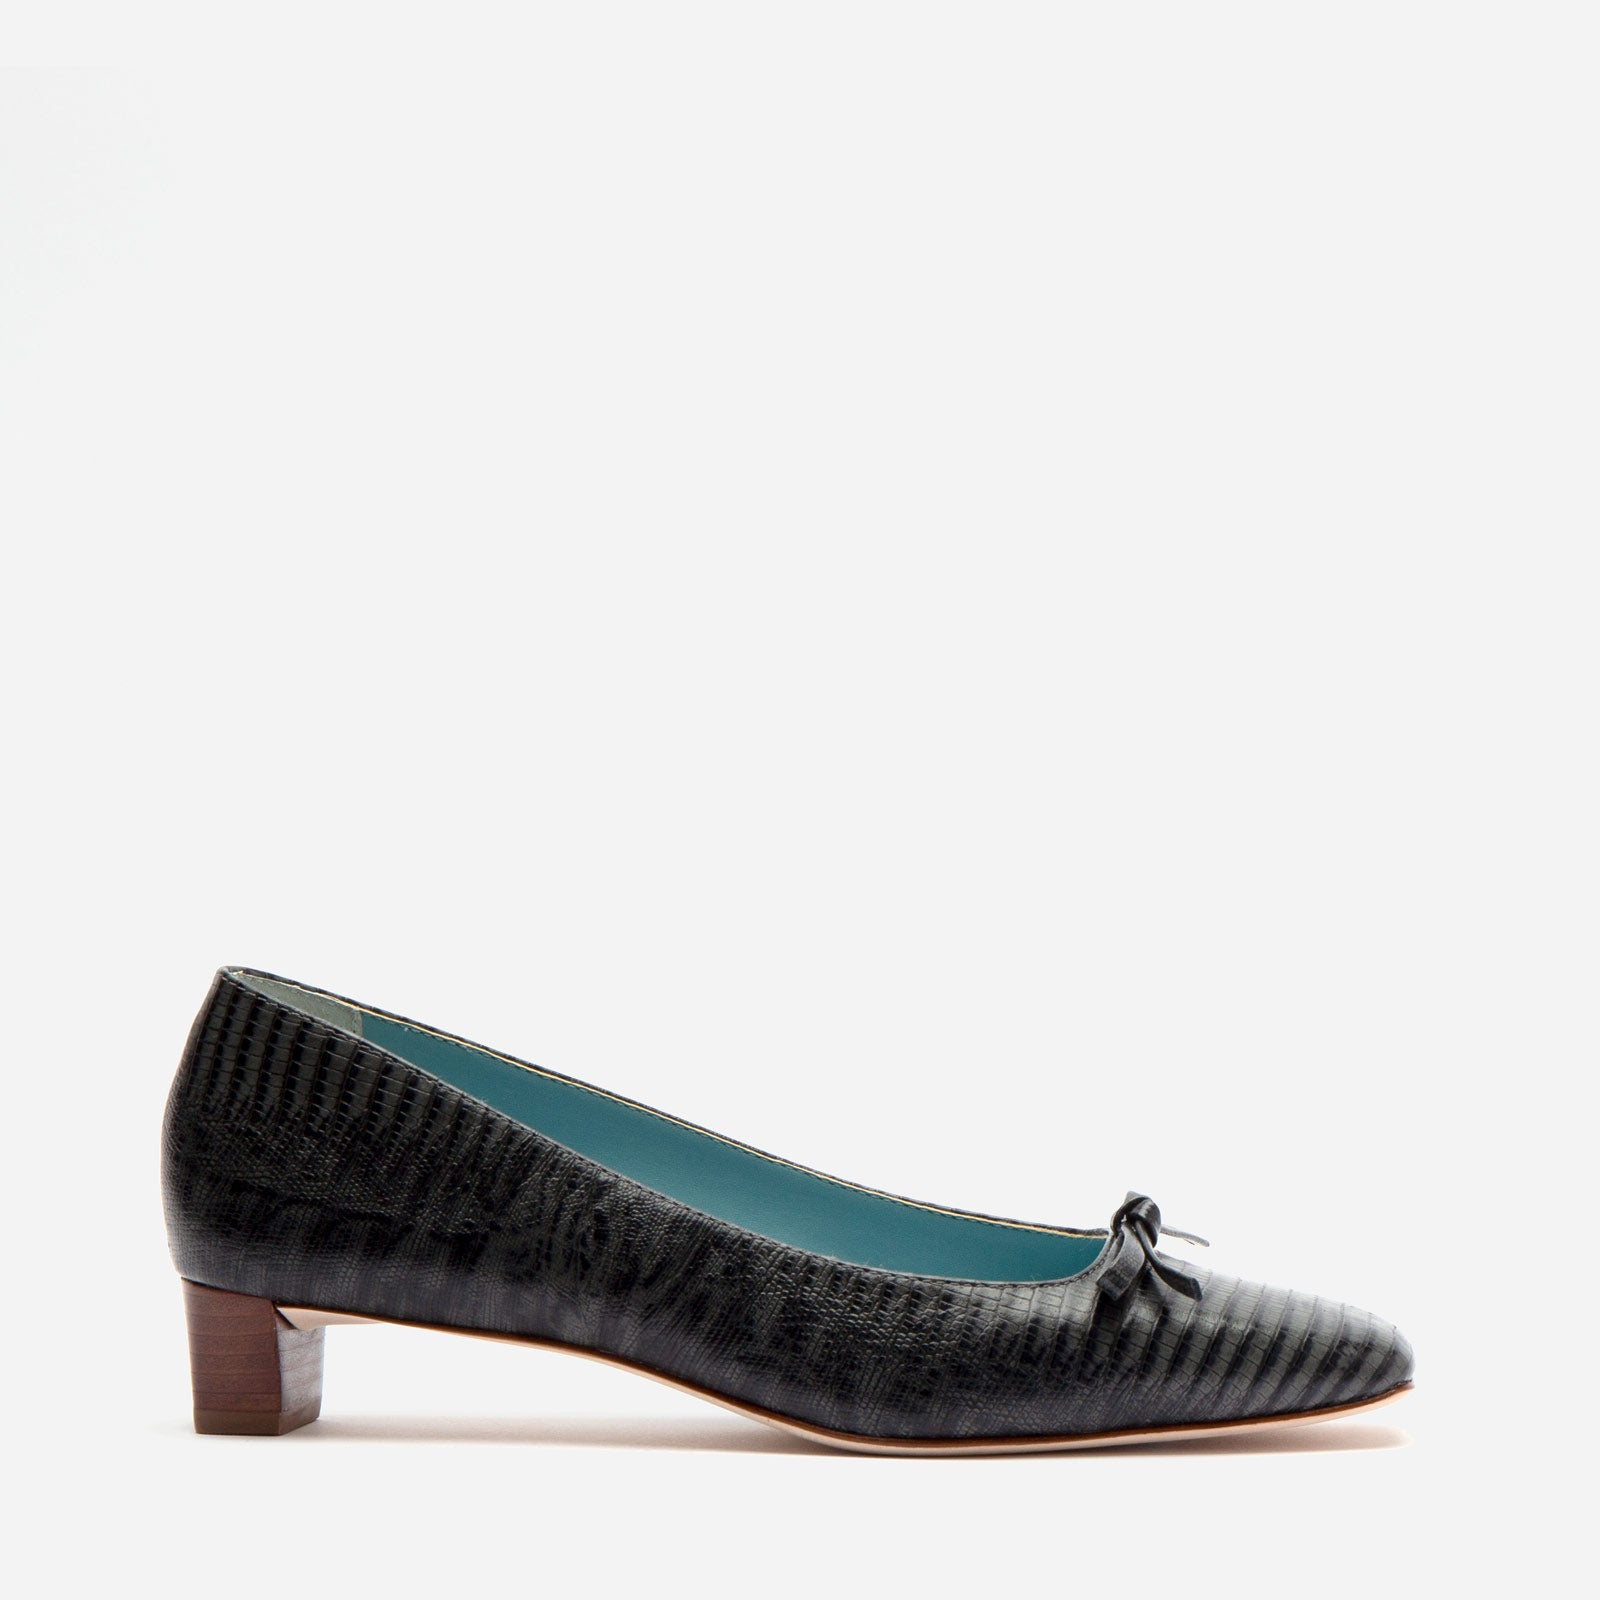 Mary Mini Block Heel Lizard Embossed Dark Grey